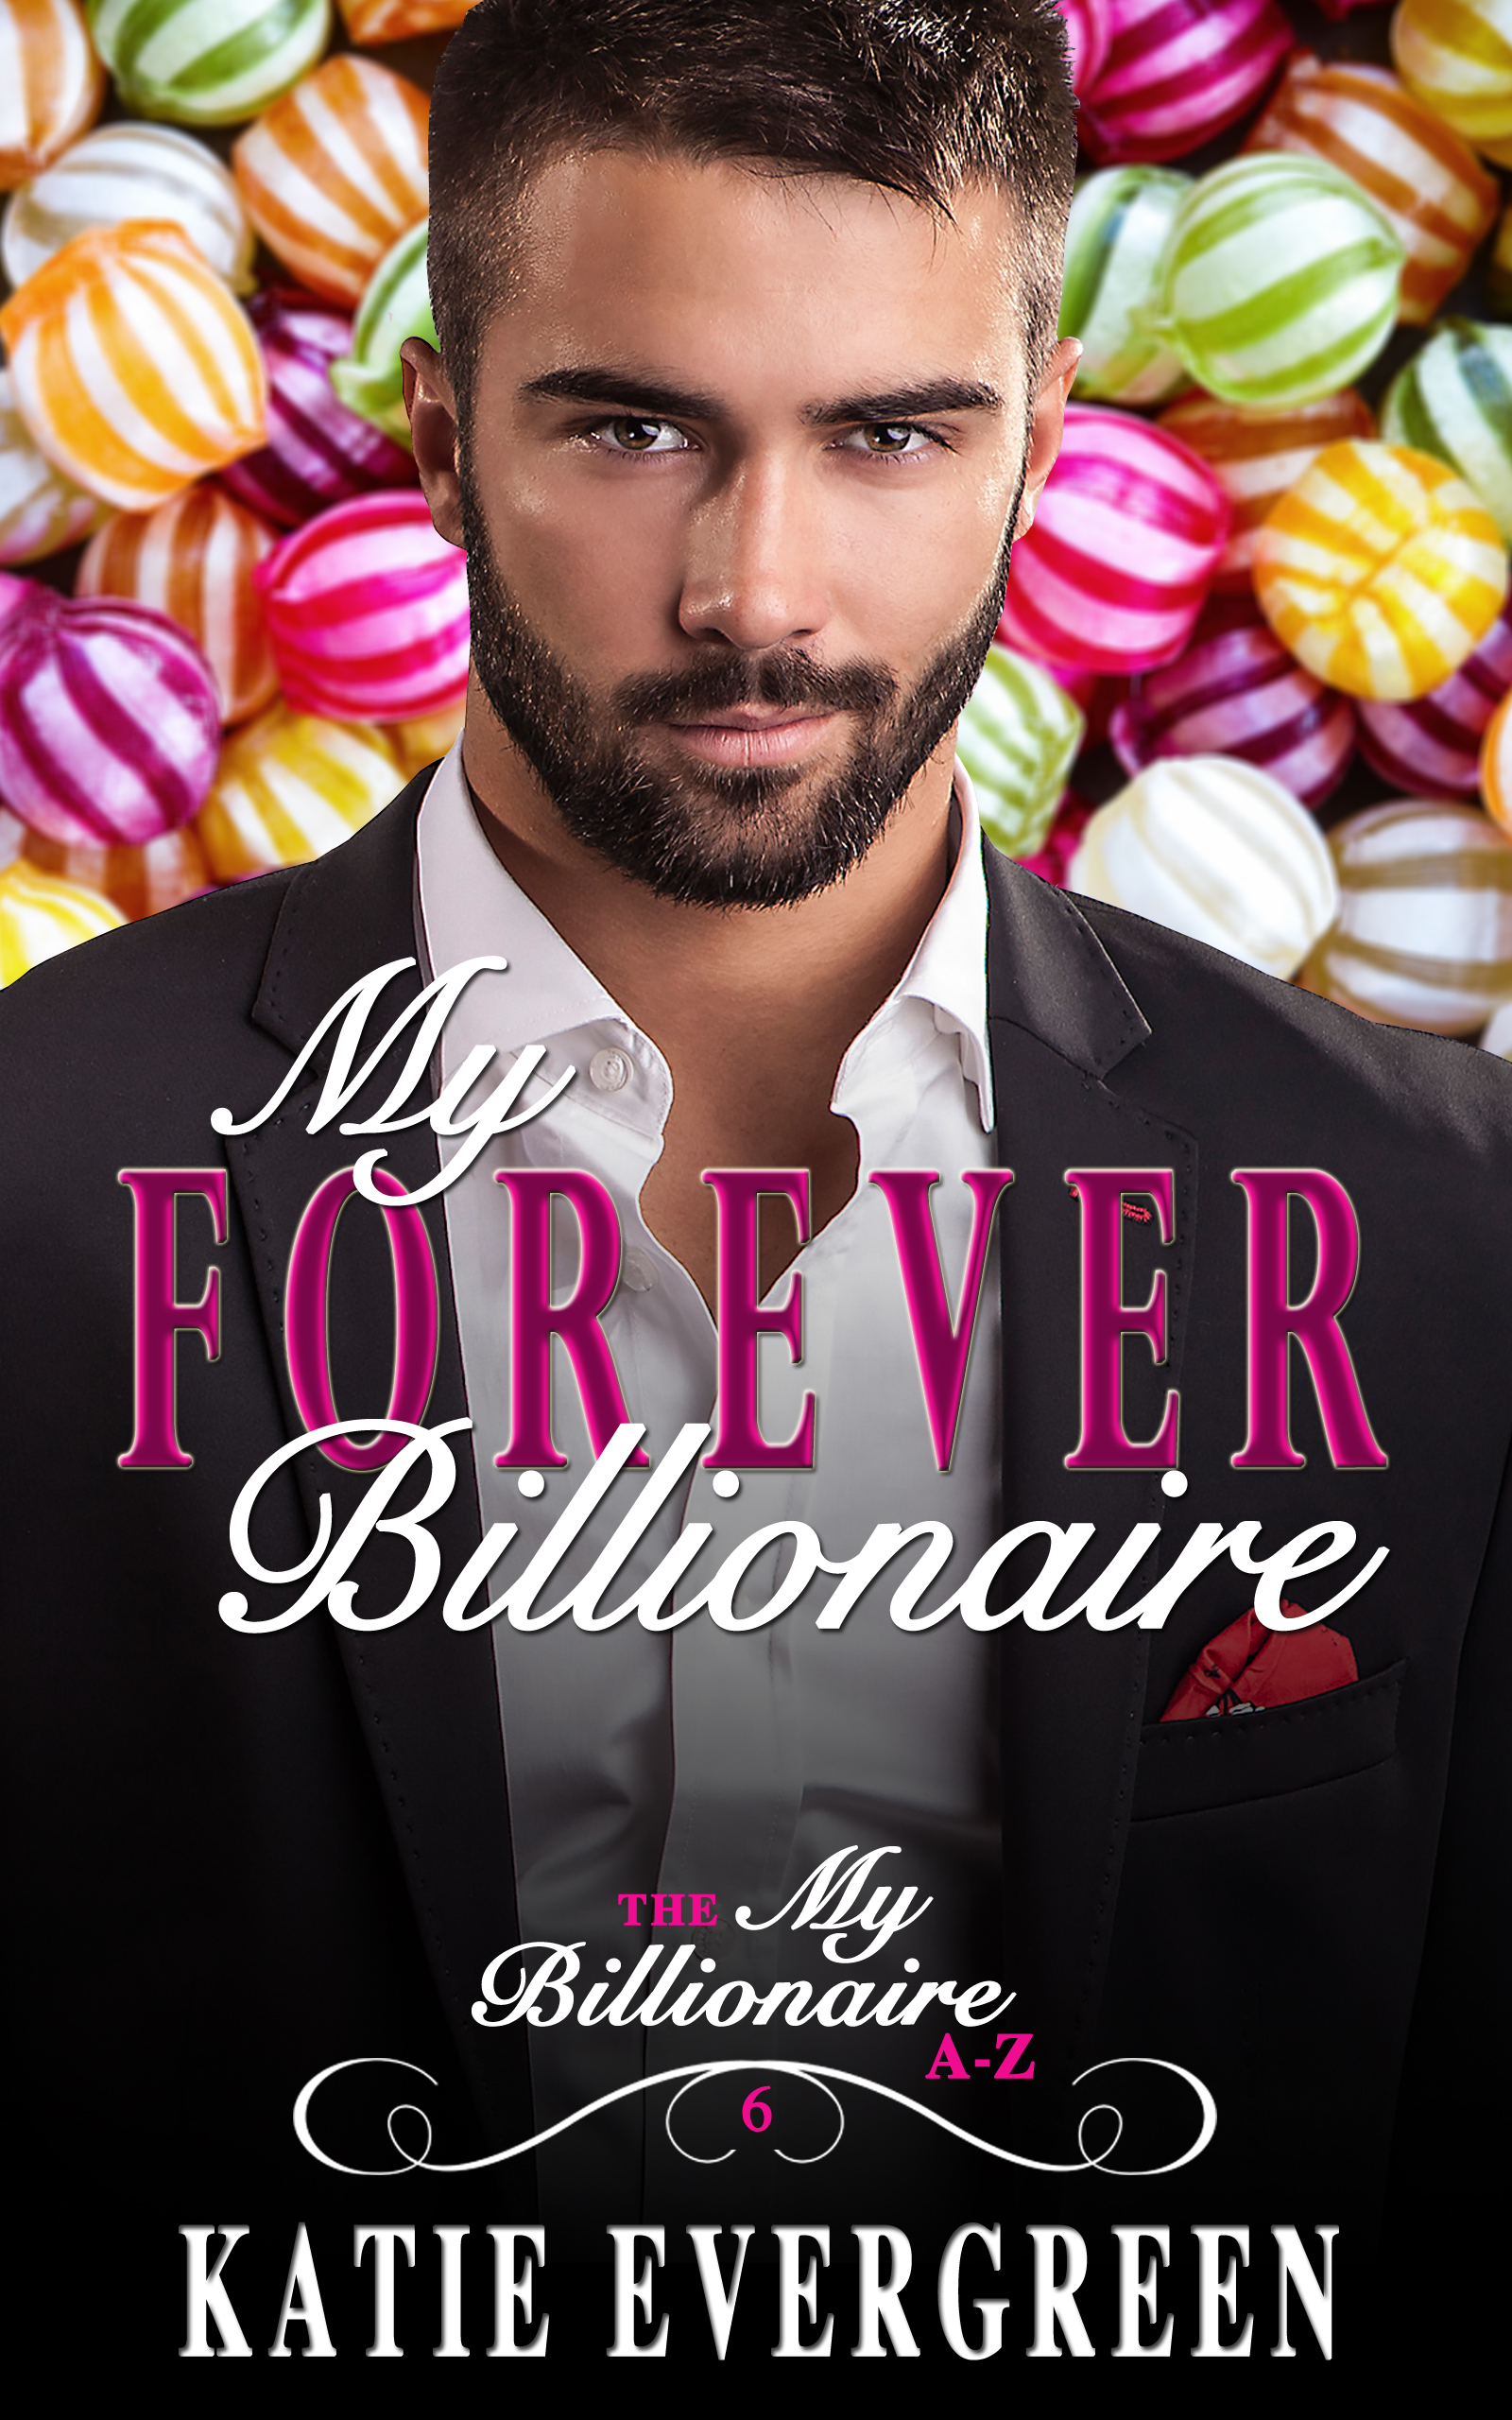 My Forever Billionaire. - Fate has brought them back together, but can fate mend their broken hearts and give them a happy forever after?